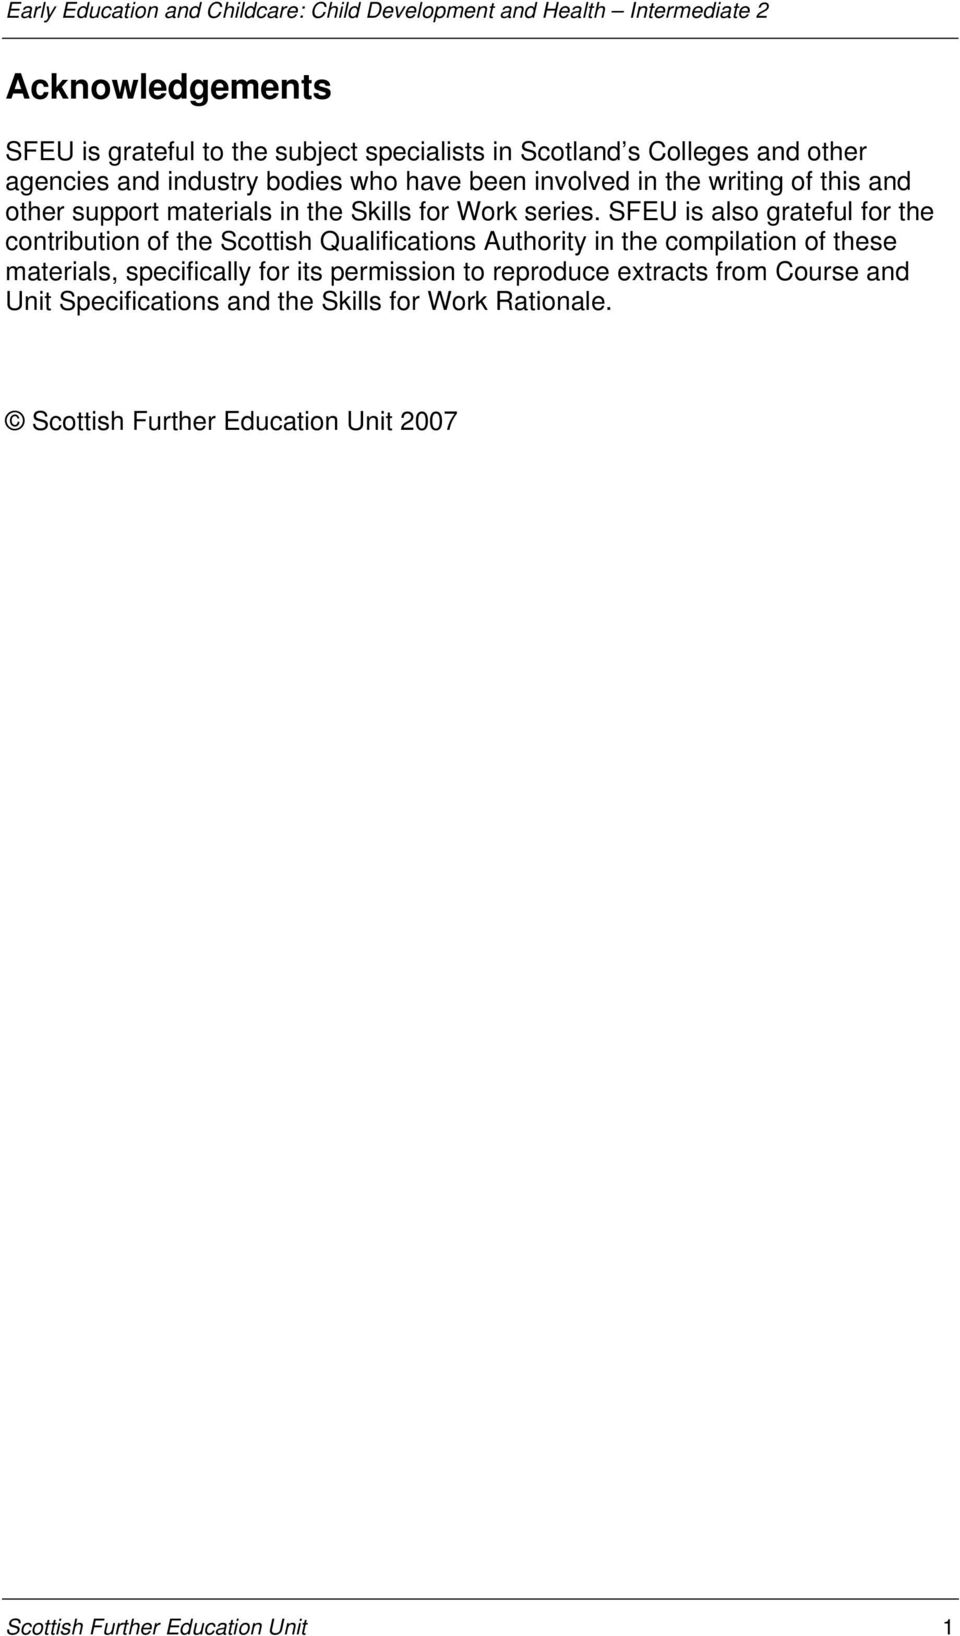 SFEU is also grateful for the contribution of the Scottish Qualifications  Authority in the compilation of